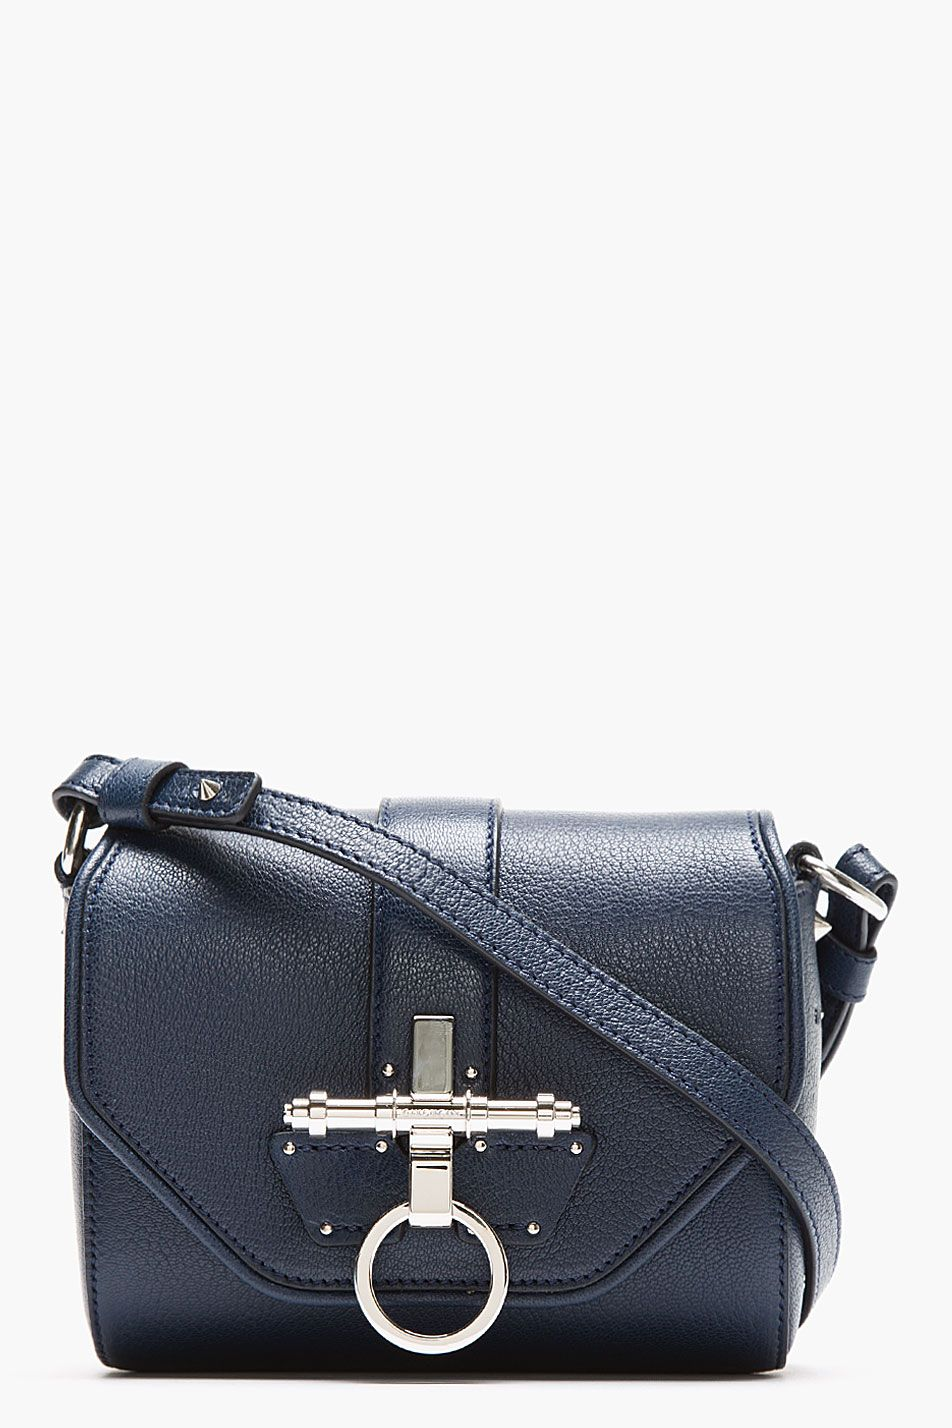 Another goodie on sale  Givenchy Obsedia http   rstyle.me ~ 3f5fe9ee8e21b